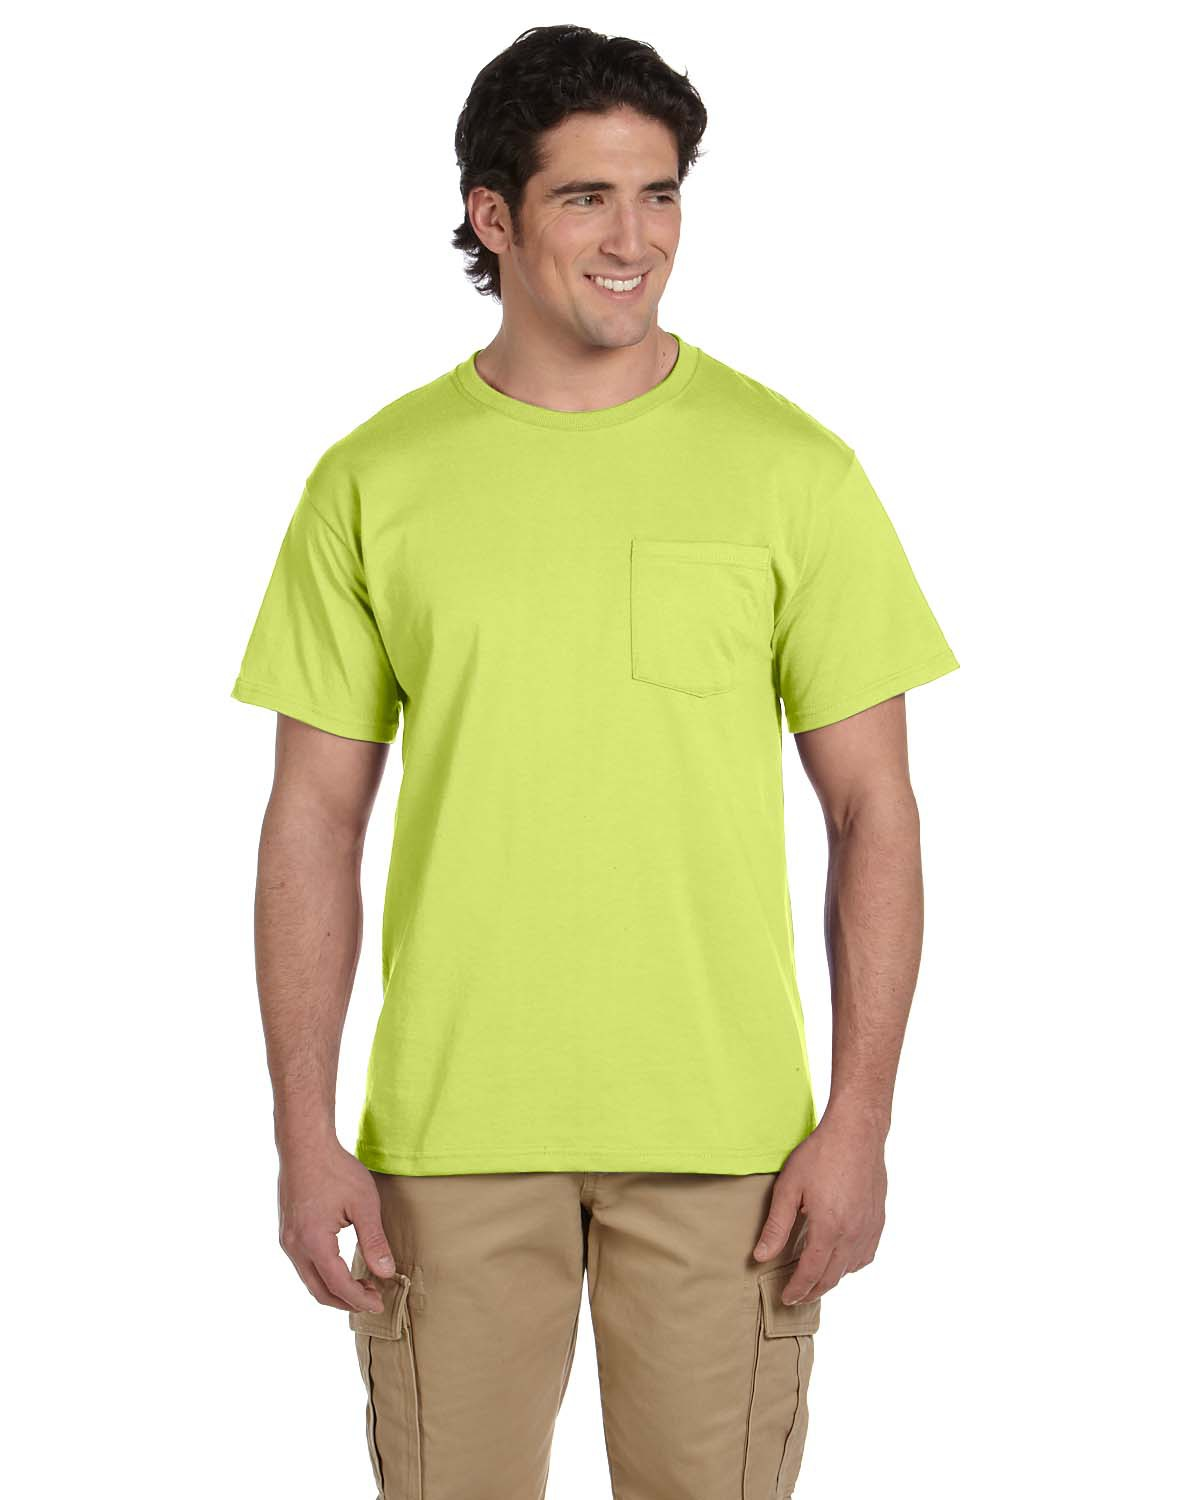 Jerzees 29P 5.6 oz., 50/50 Heavyweight Blend Pocket T